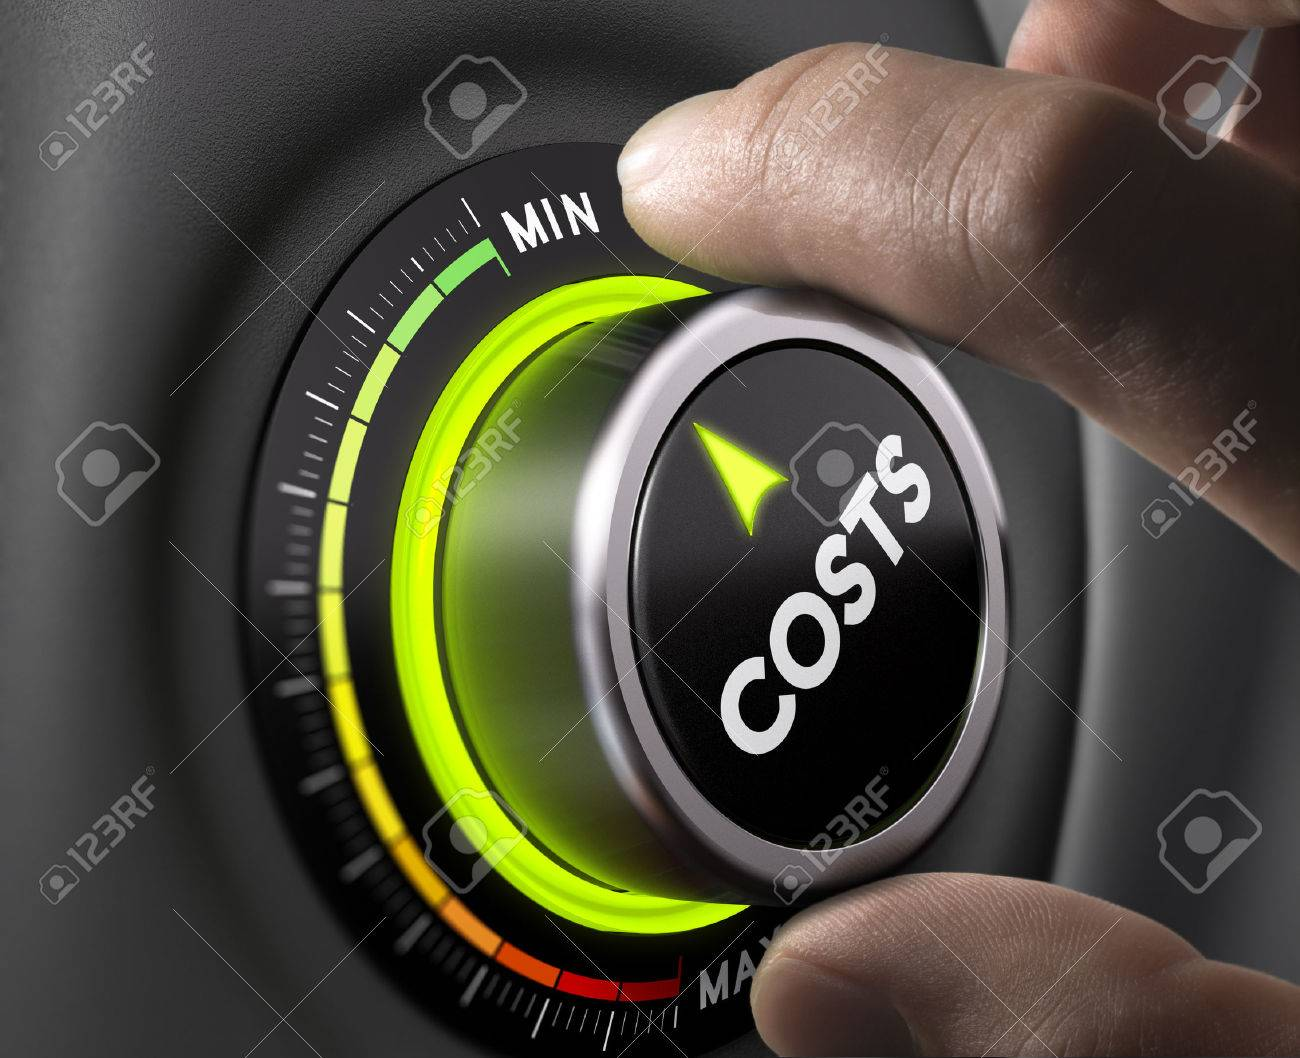 Man fingers setting cost button on minimum position. Concept image for illustration of cost management. - 44348788